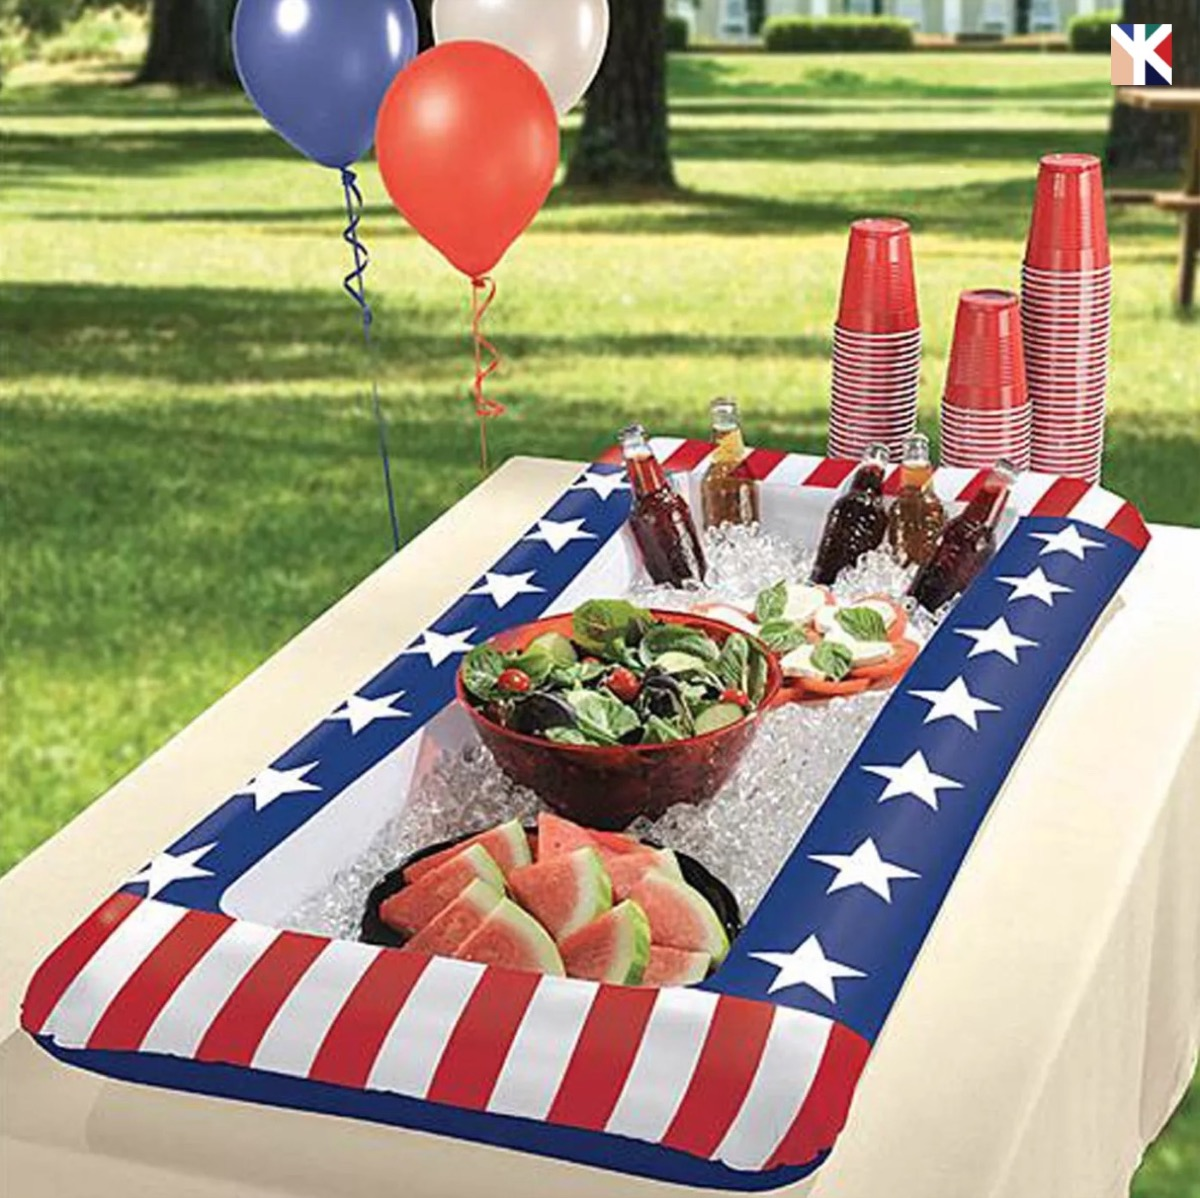 Target Inflatable Buffet Cooler Fourth of July Accessories